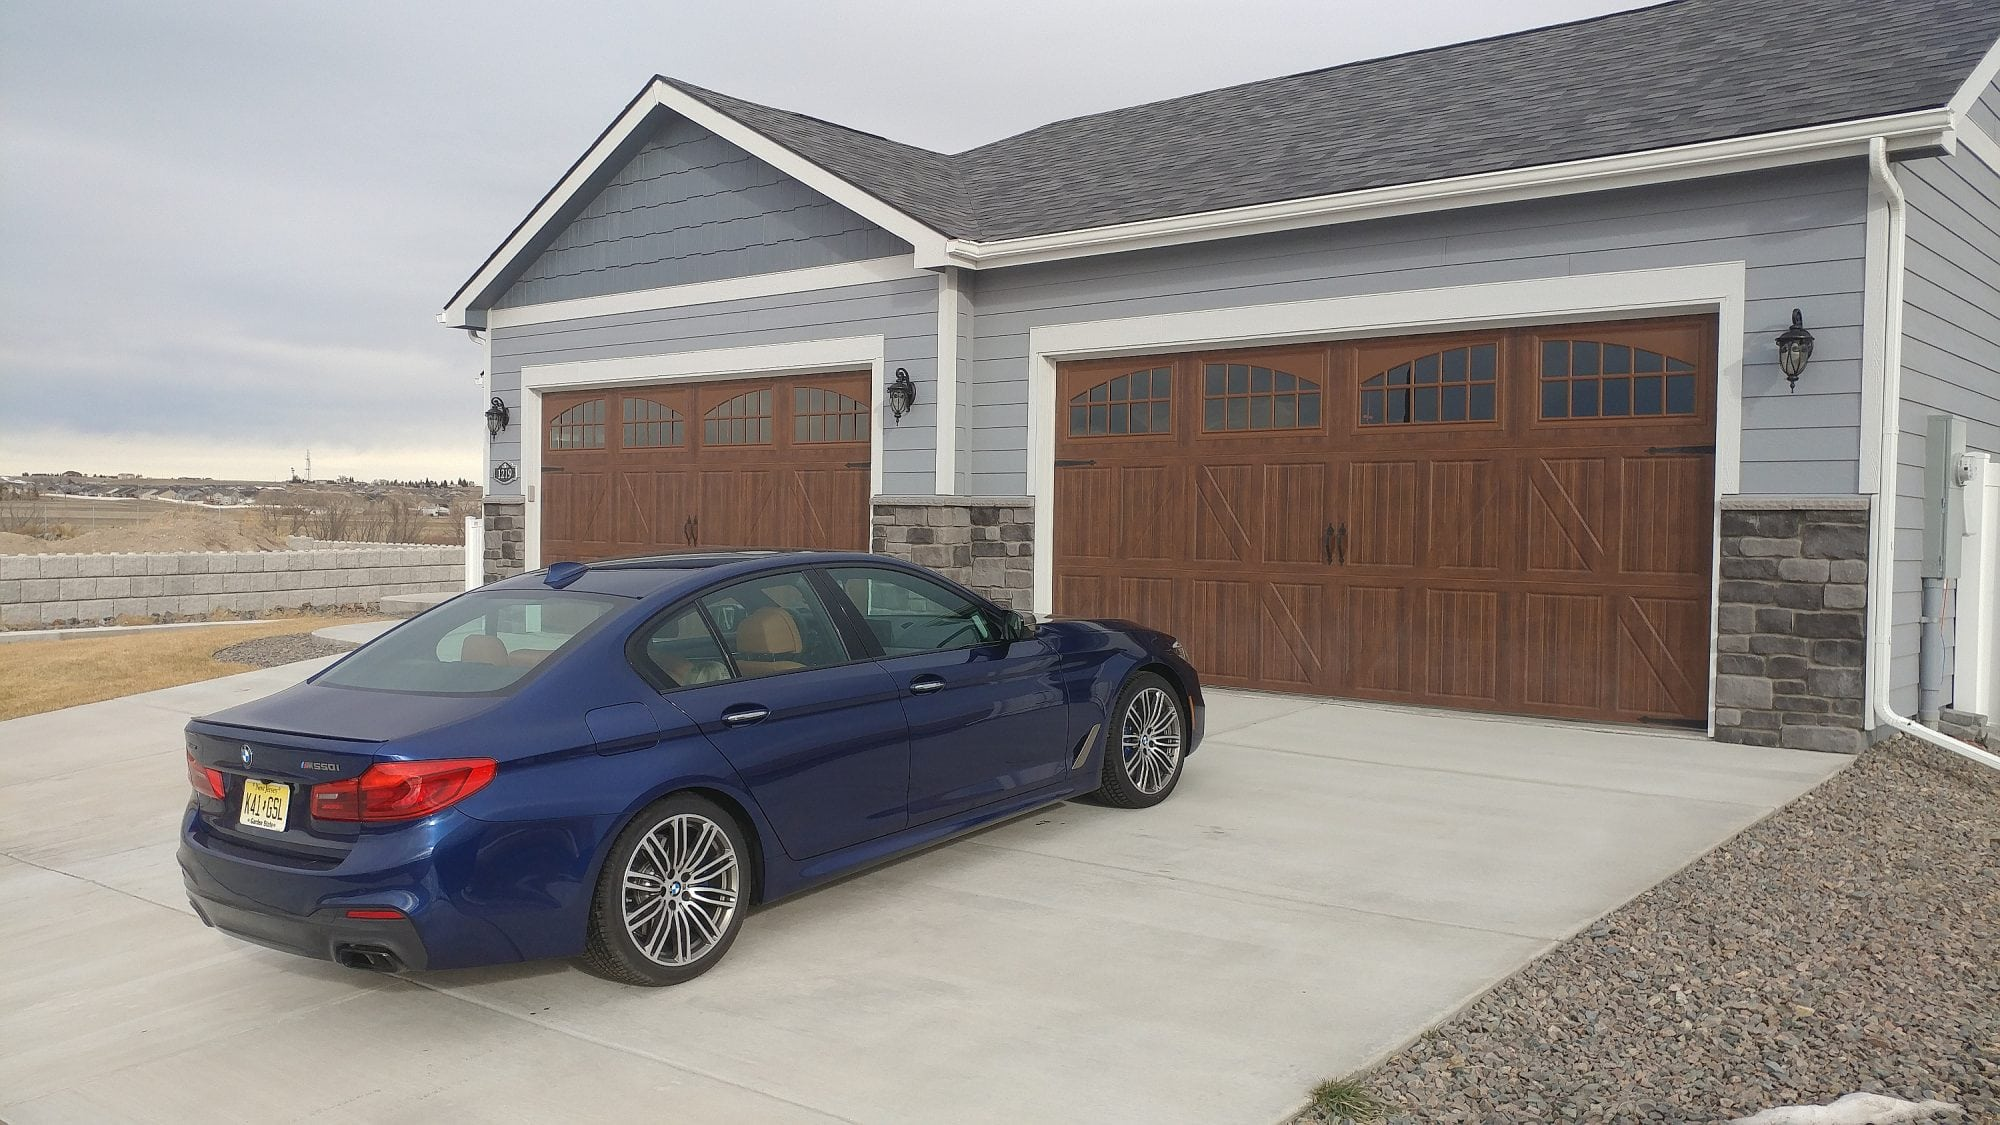 The M550i Is A Performance Sedan, First And Foremost, But BMW Didnu0027t Forget  What Makes The 5 Series Its Most Popular Model Line. The 2018 M550i  Combines The ...